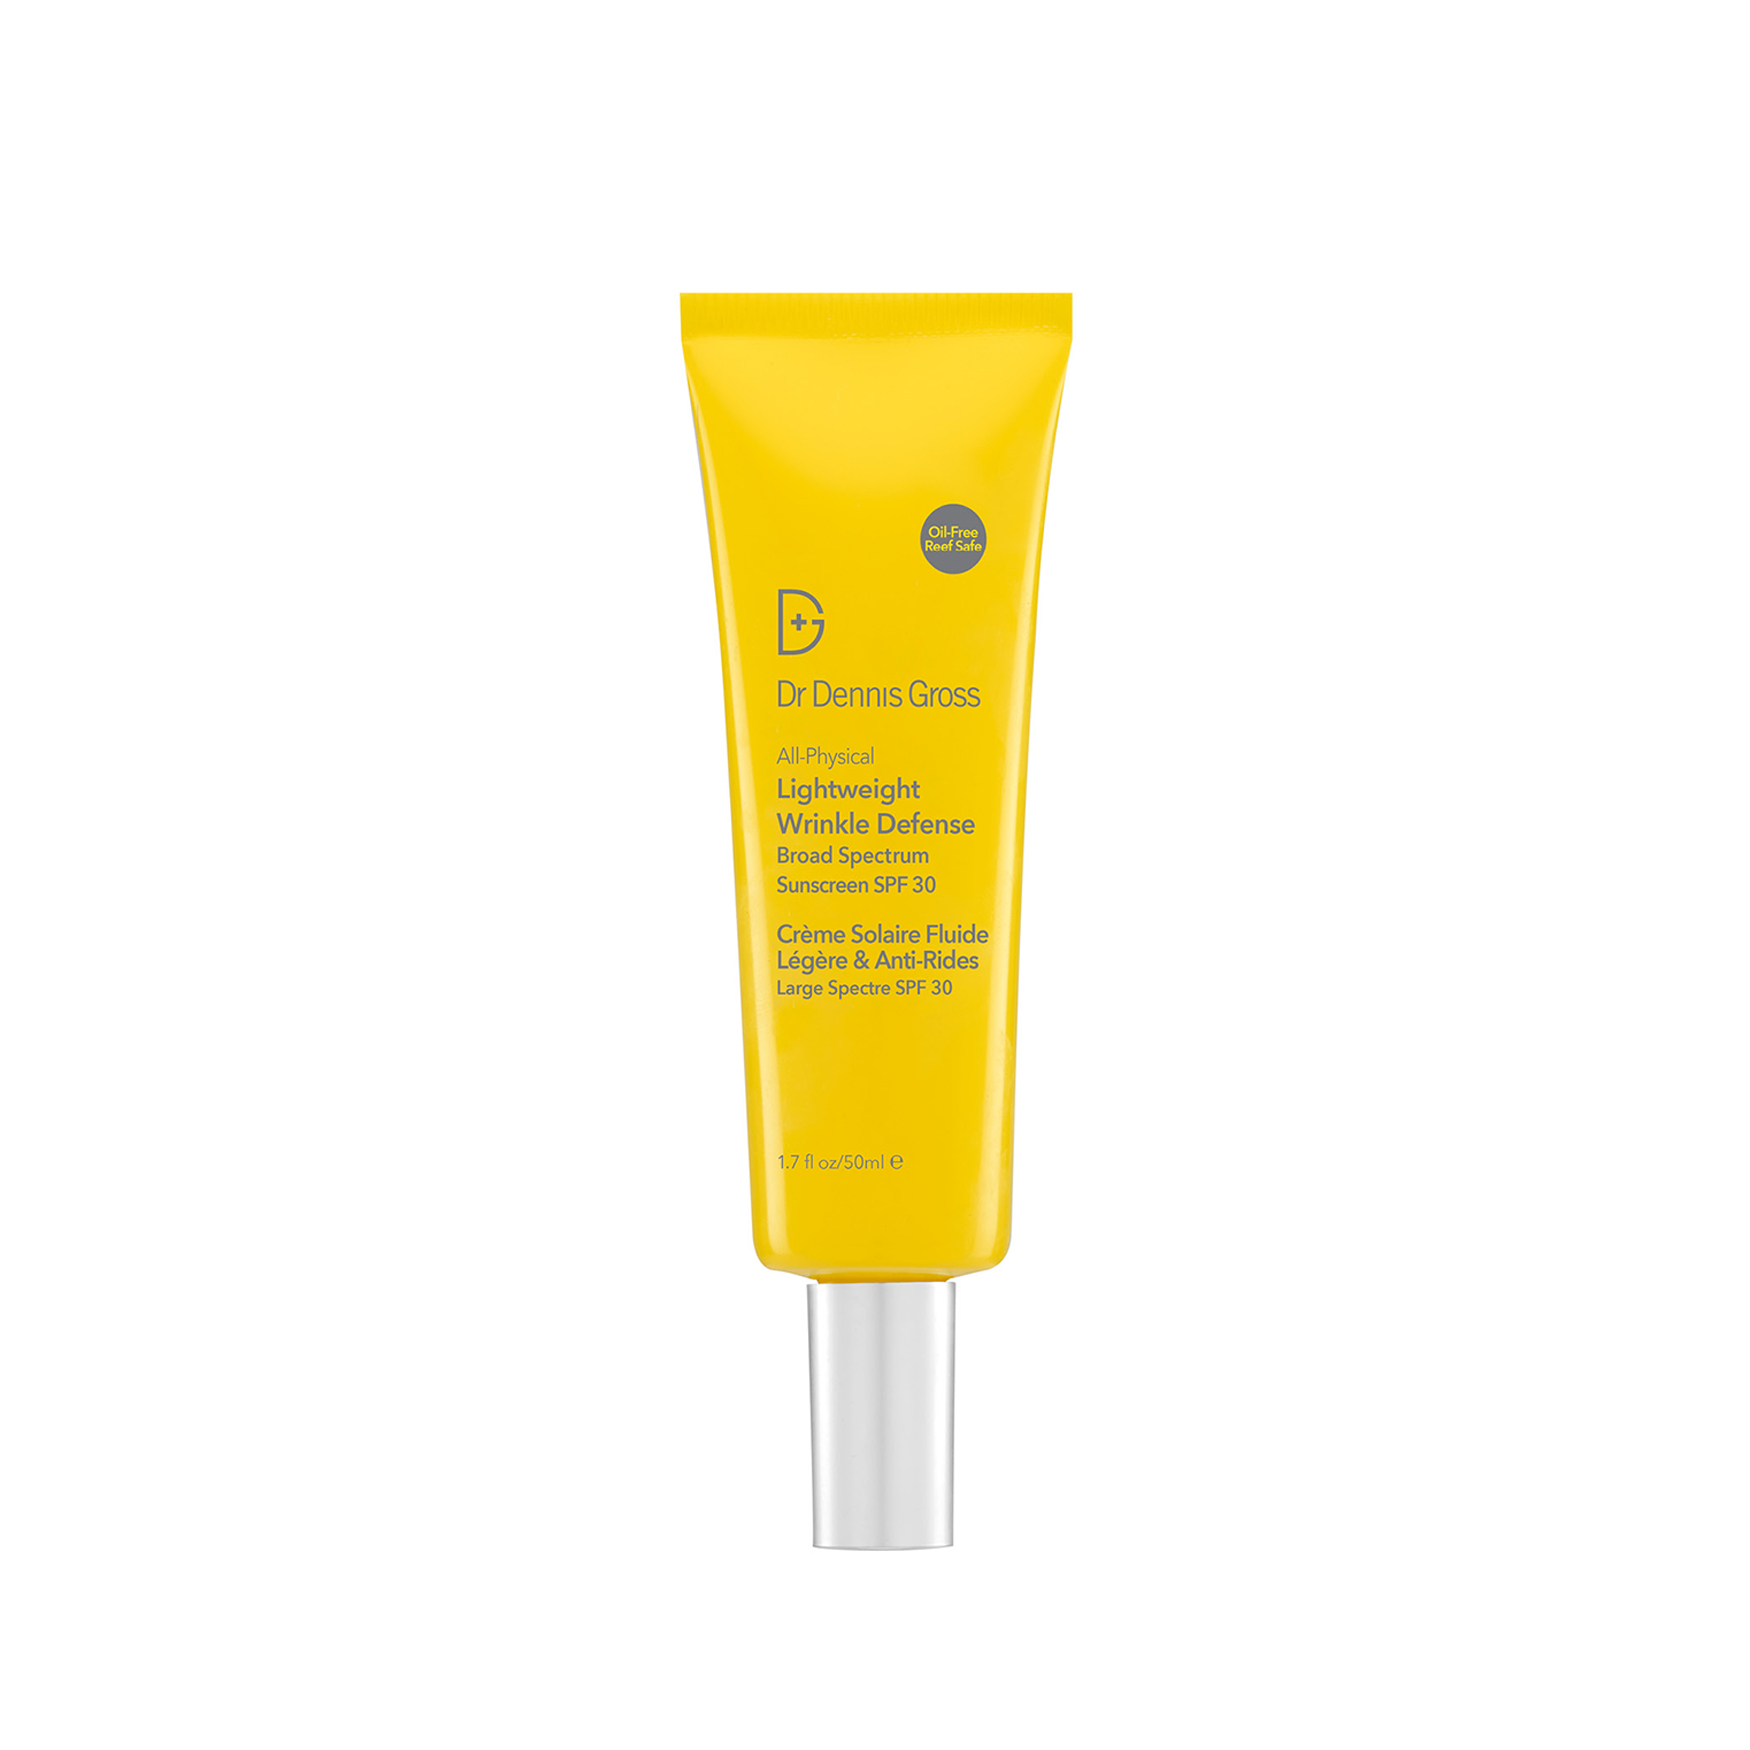 All-Physical Lightweight Wrinkle Defense Broad Spectrum Sunscreen SPF 30, , large